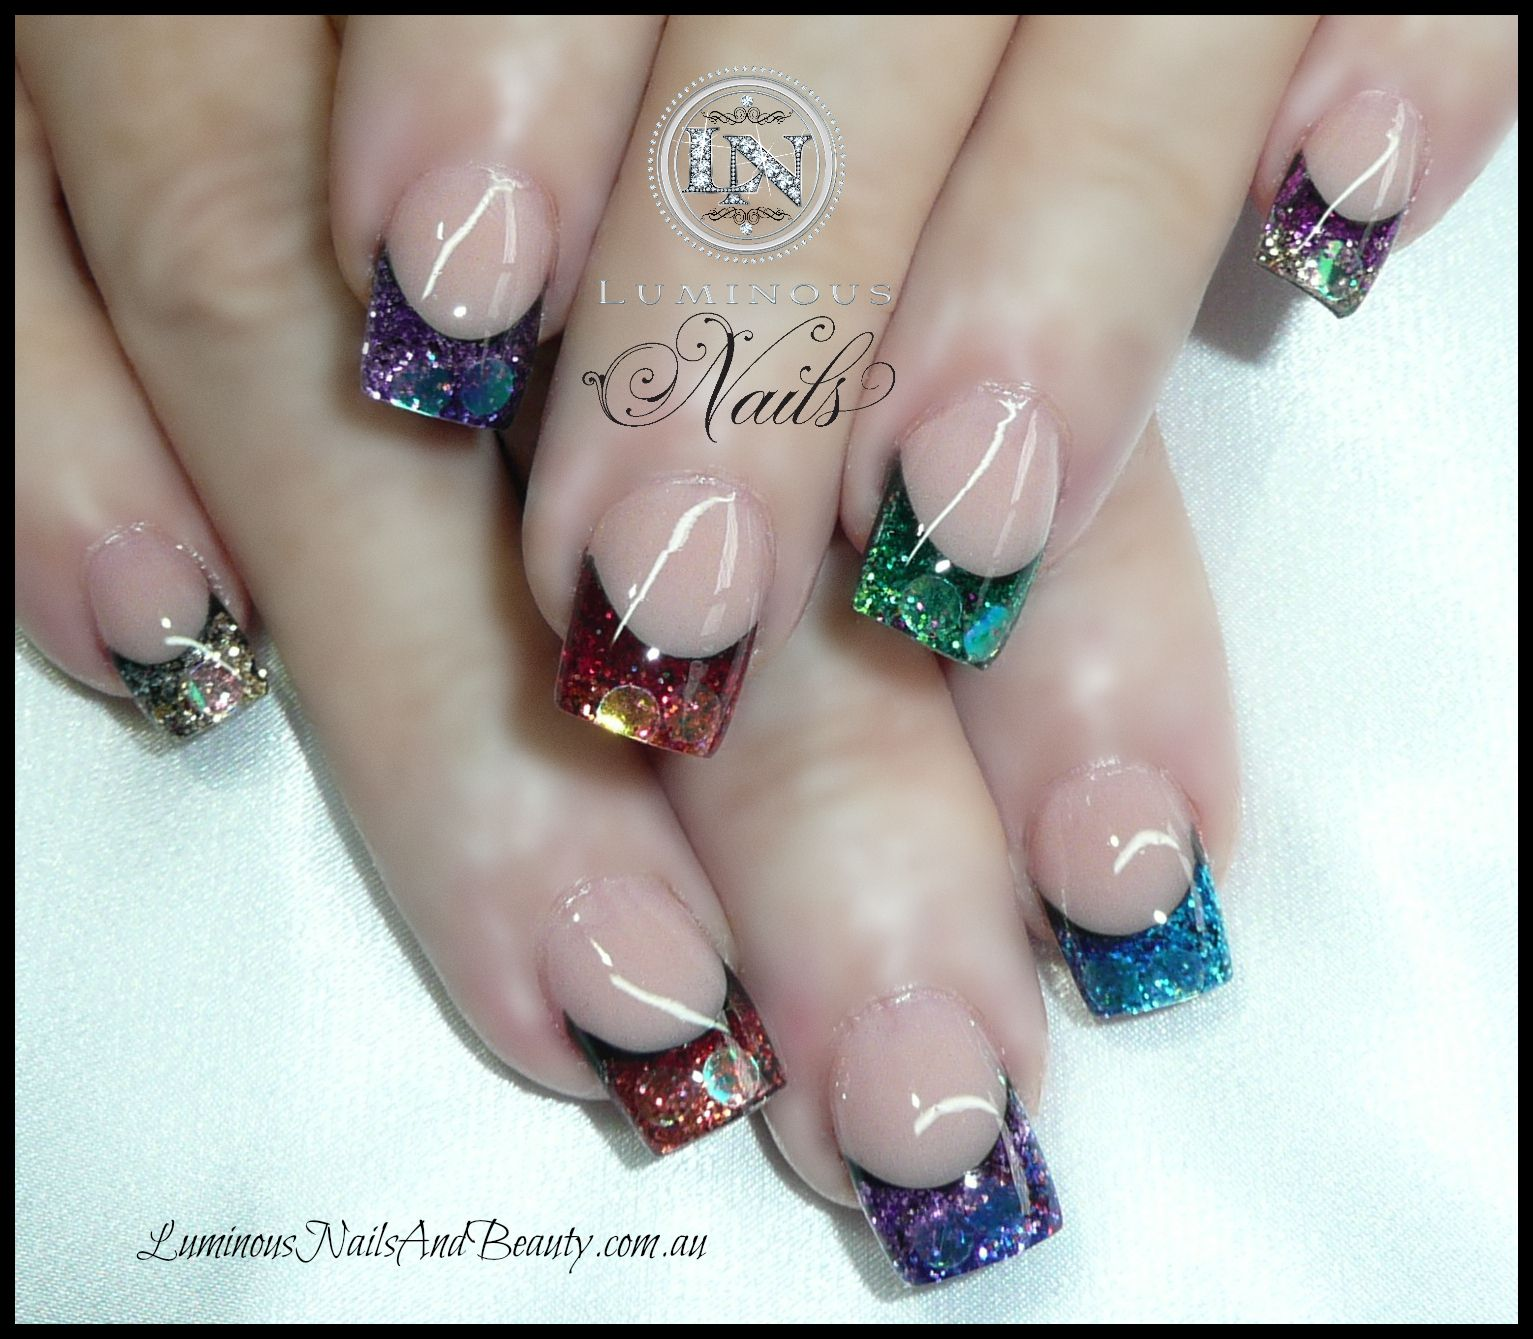 Glitter, color French manicure